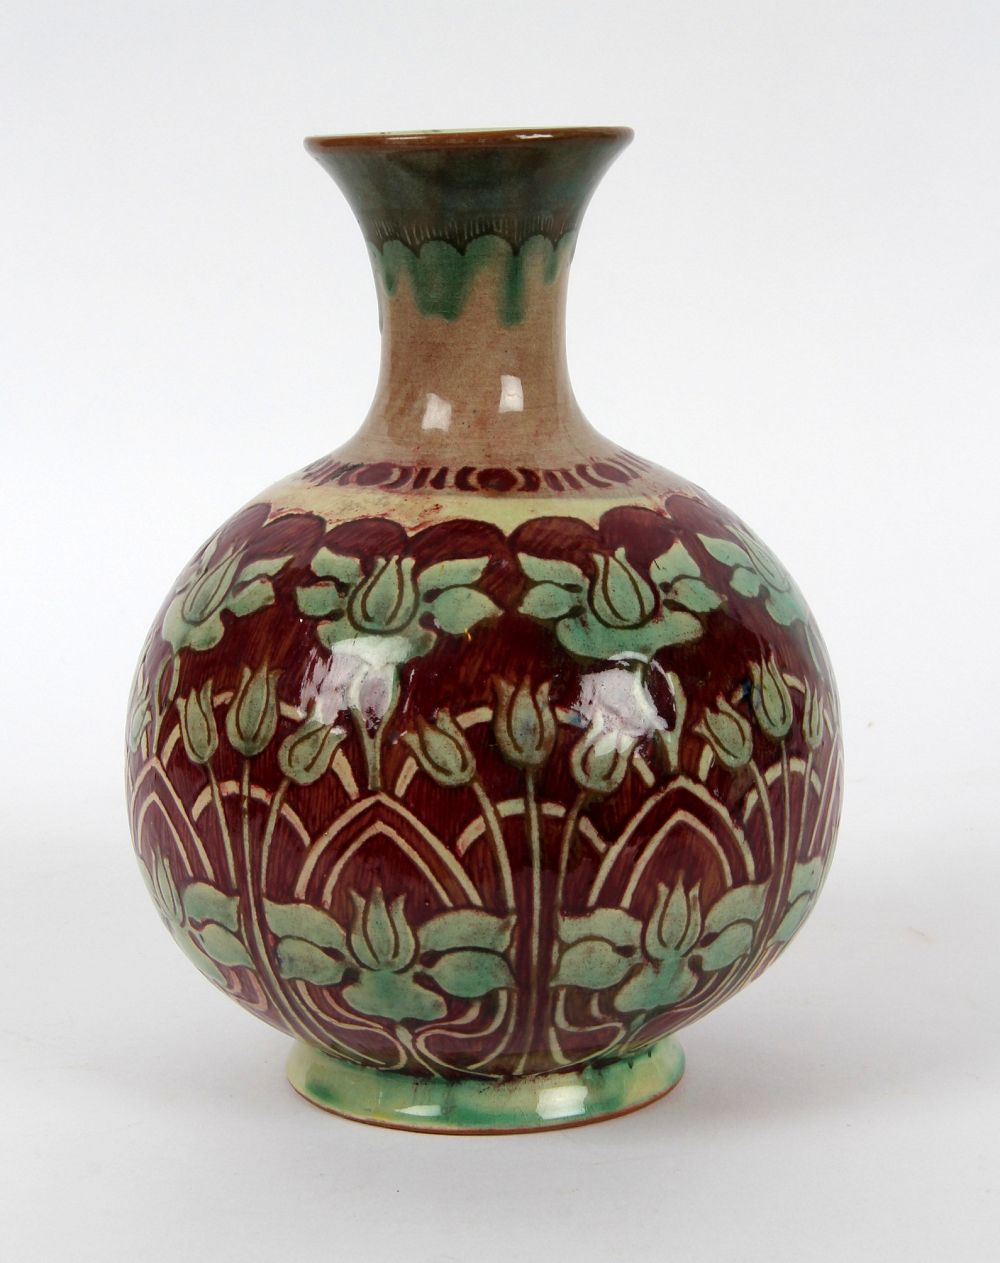 James miles della robbia birkenhead arts and crafts vase for Arts and crafts vases pottery